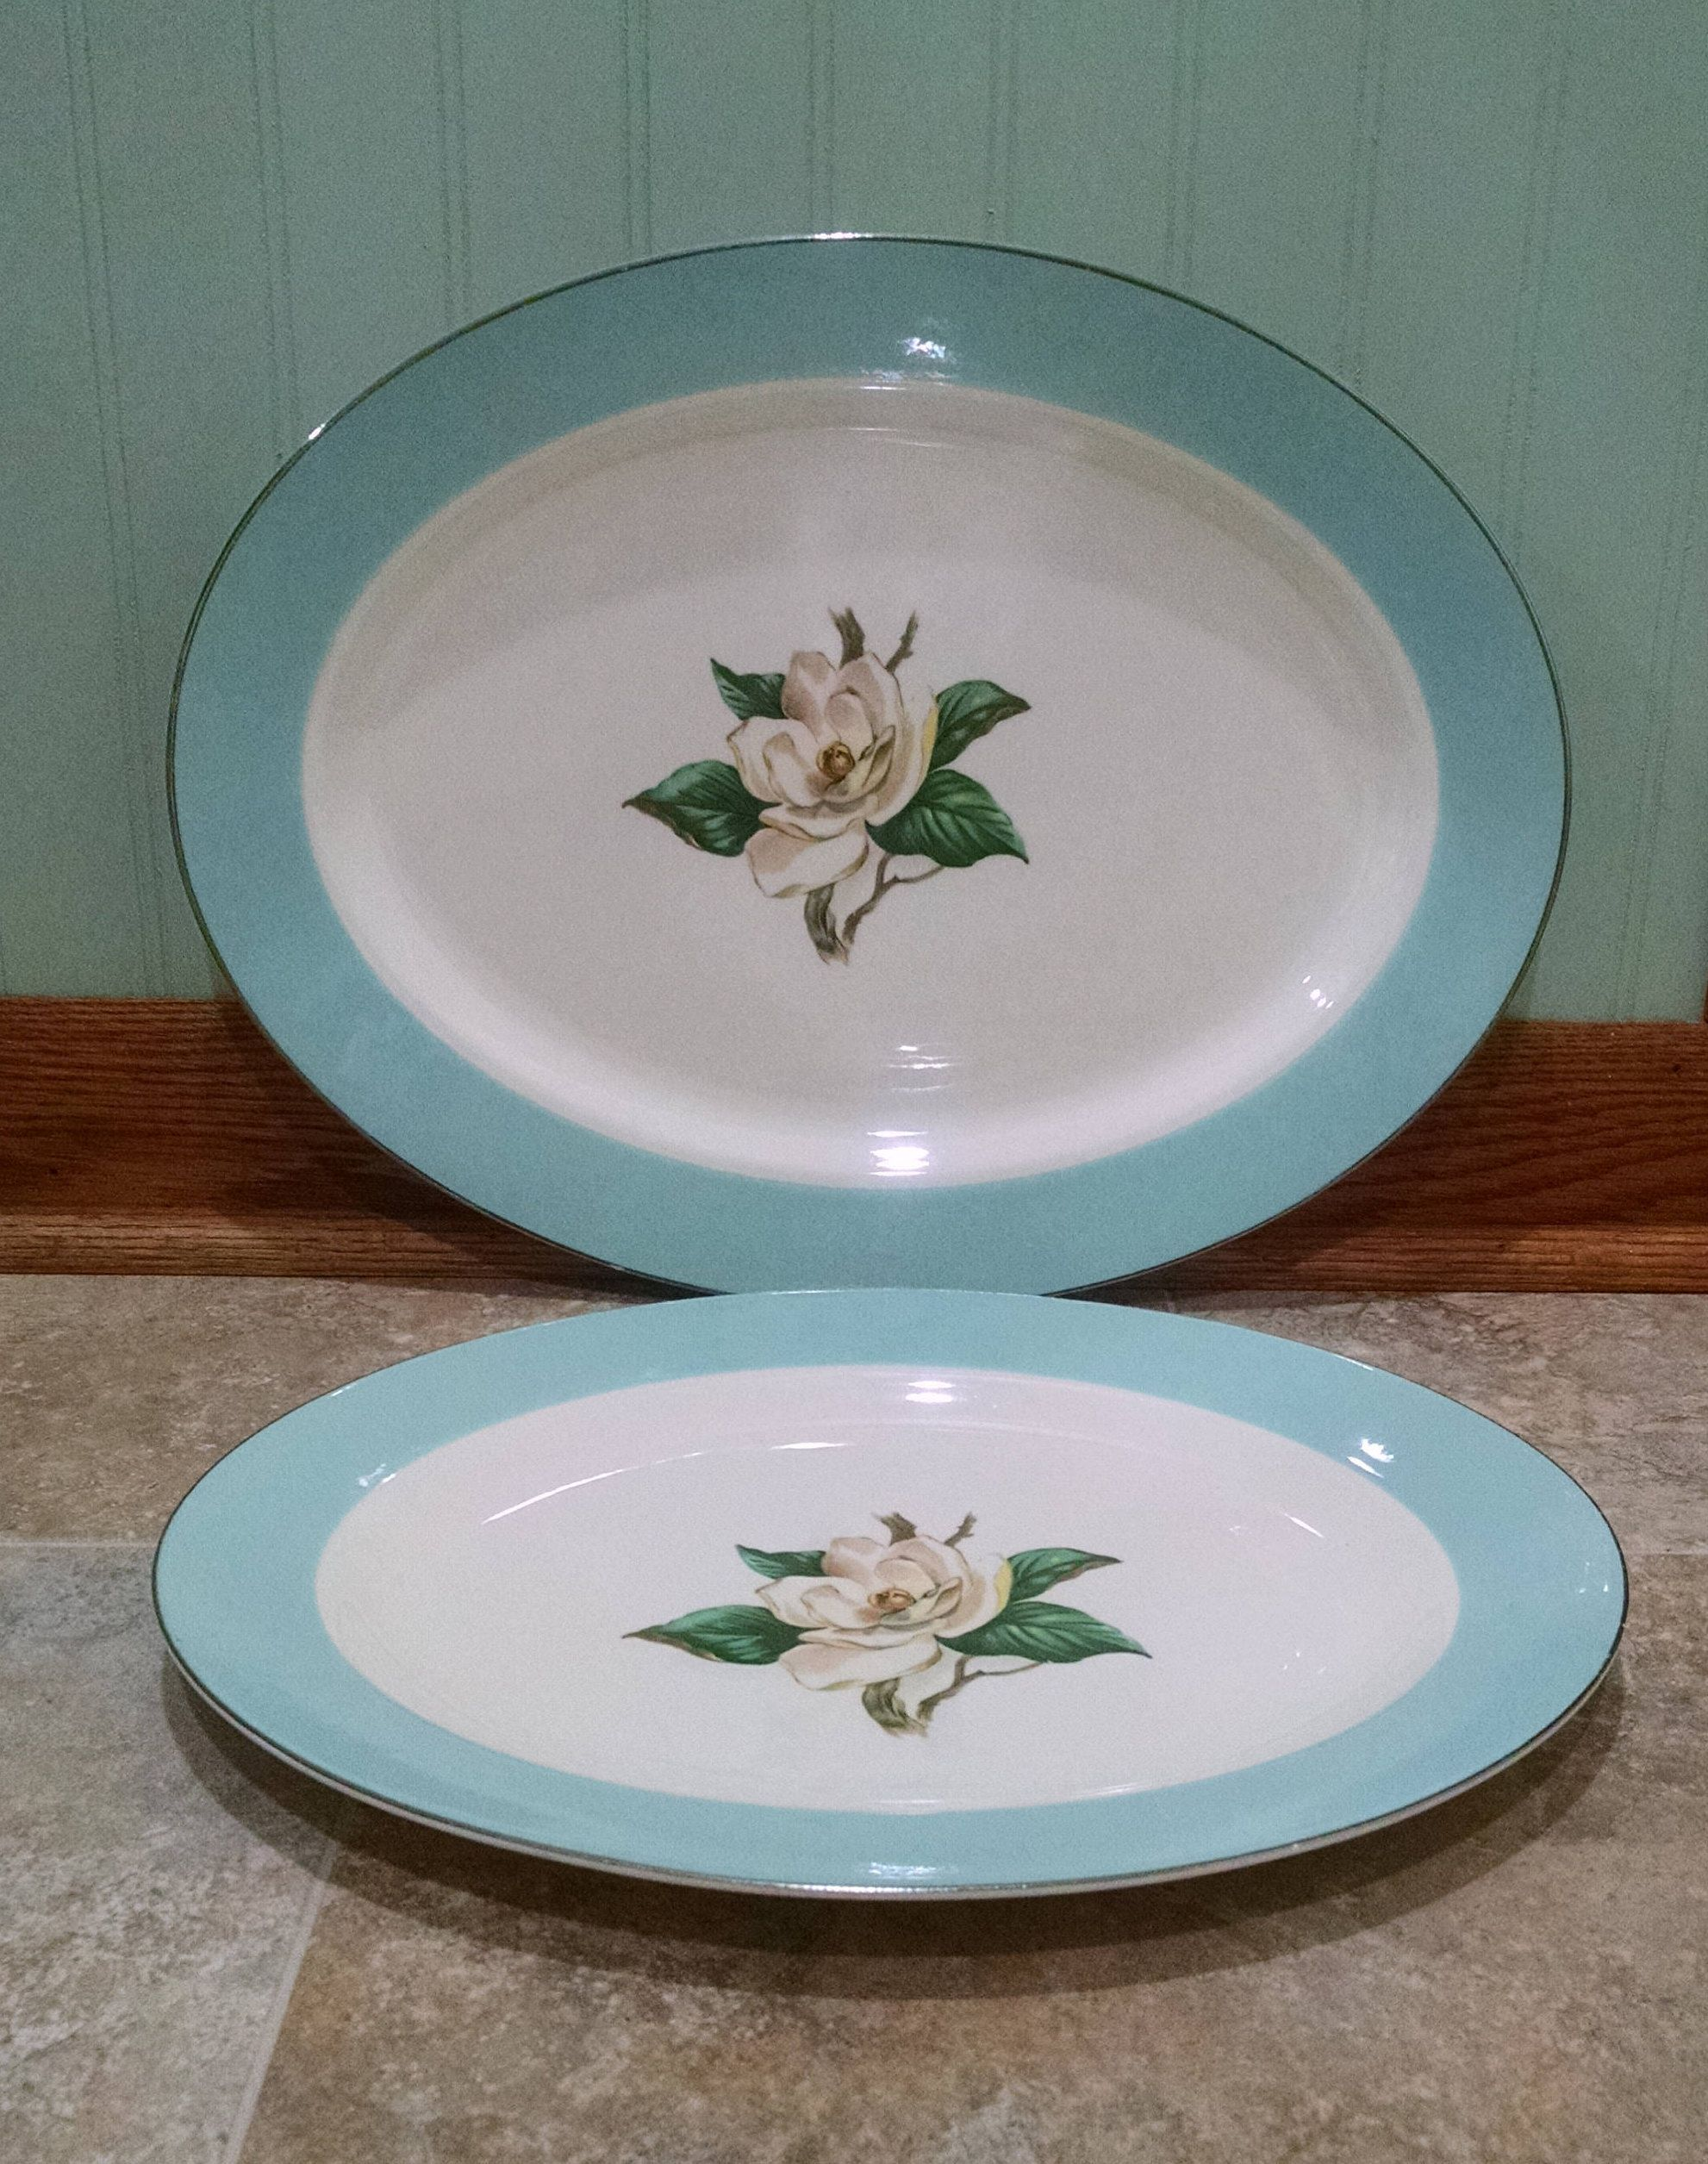 Lifetime China by Homer Laughlin - Turquoise - Magnolia Platter - Set of 2 - One & Lifetime China by Homer Laughlin - Turquoise - Magnolia Platter ...